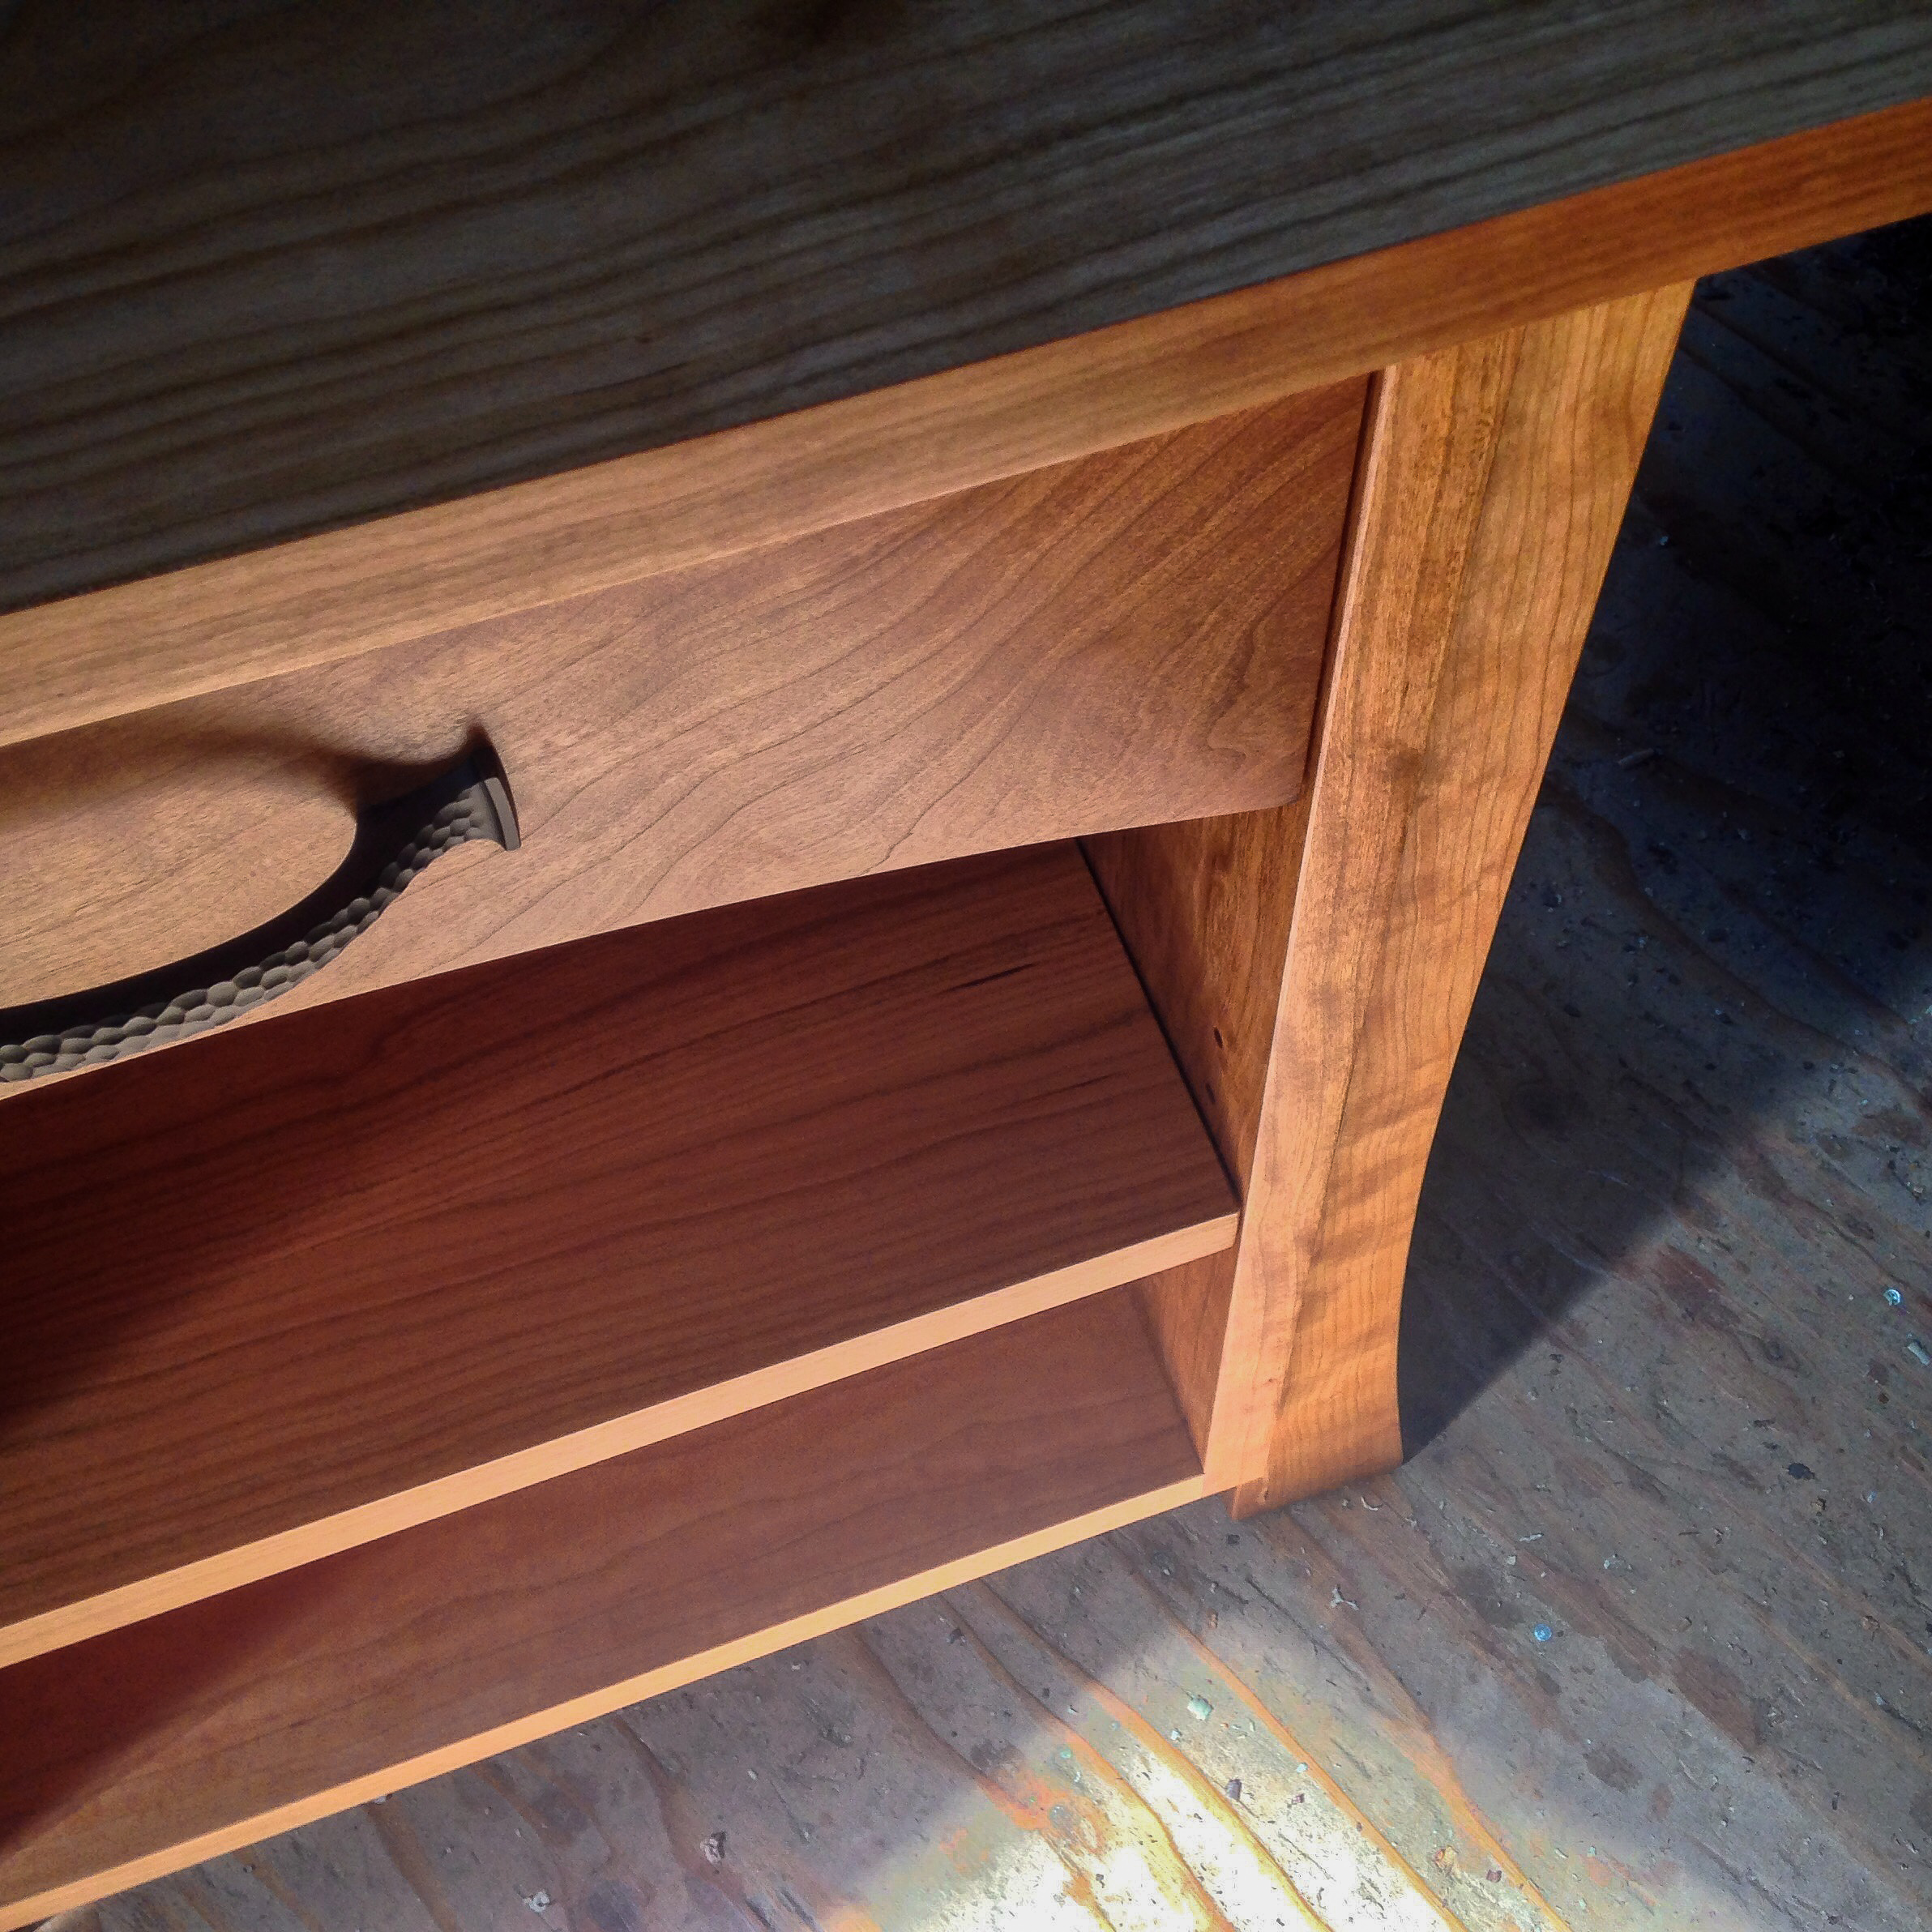 Detail of a cherry night stand with one drawer and adjustable shelf.